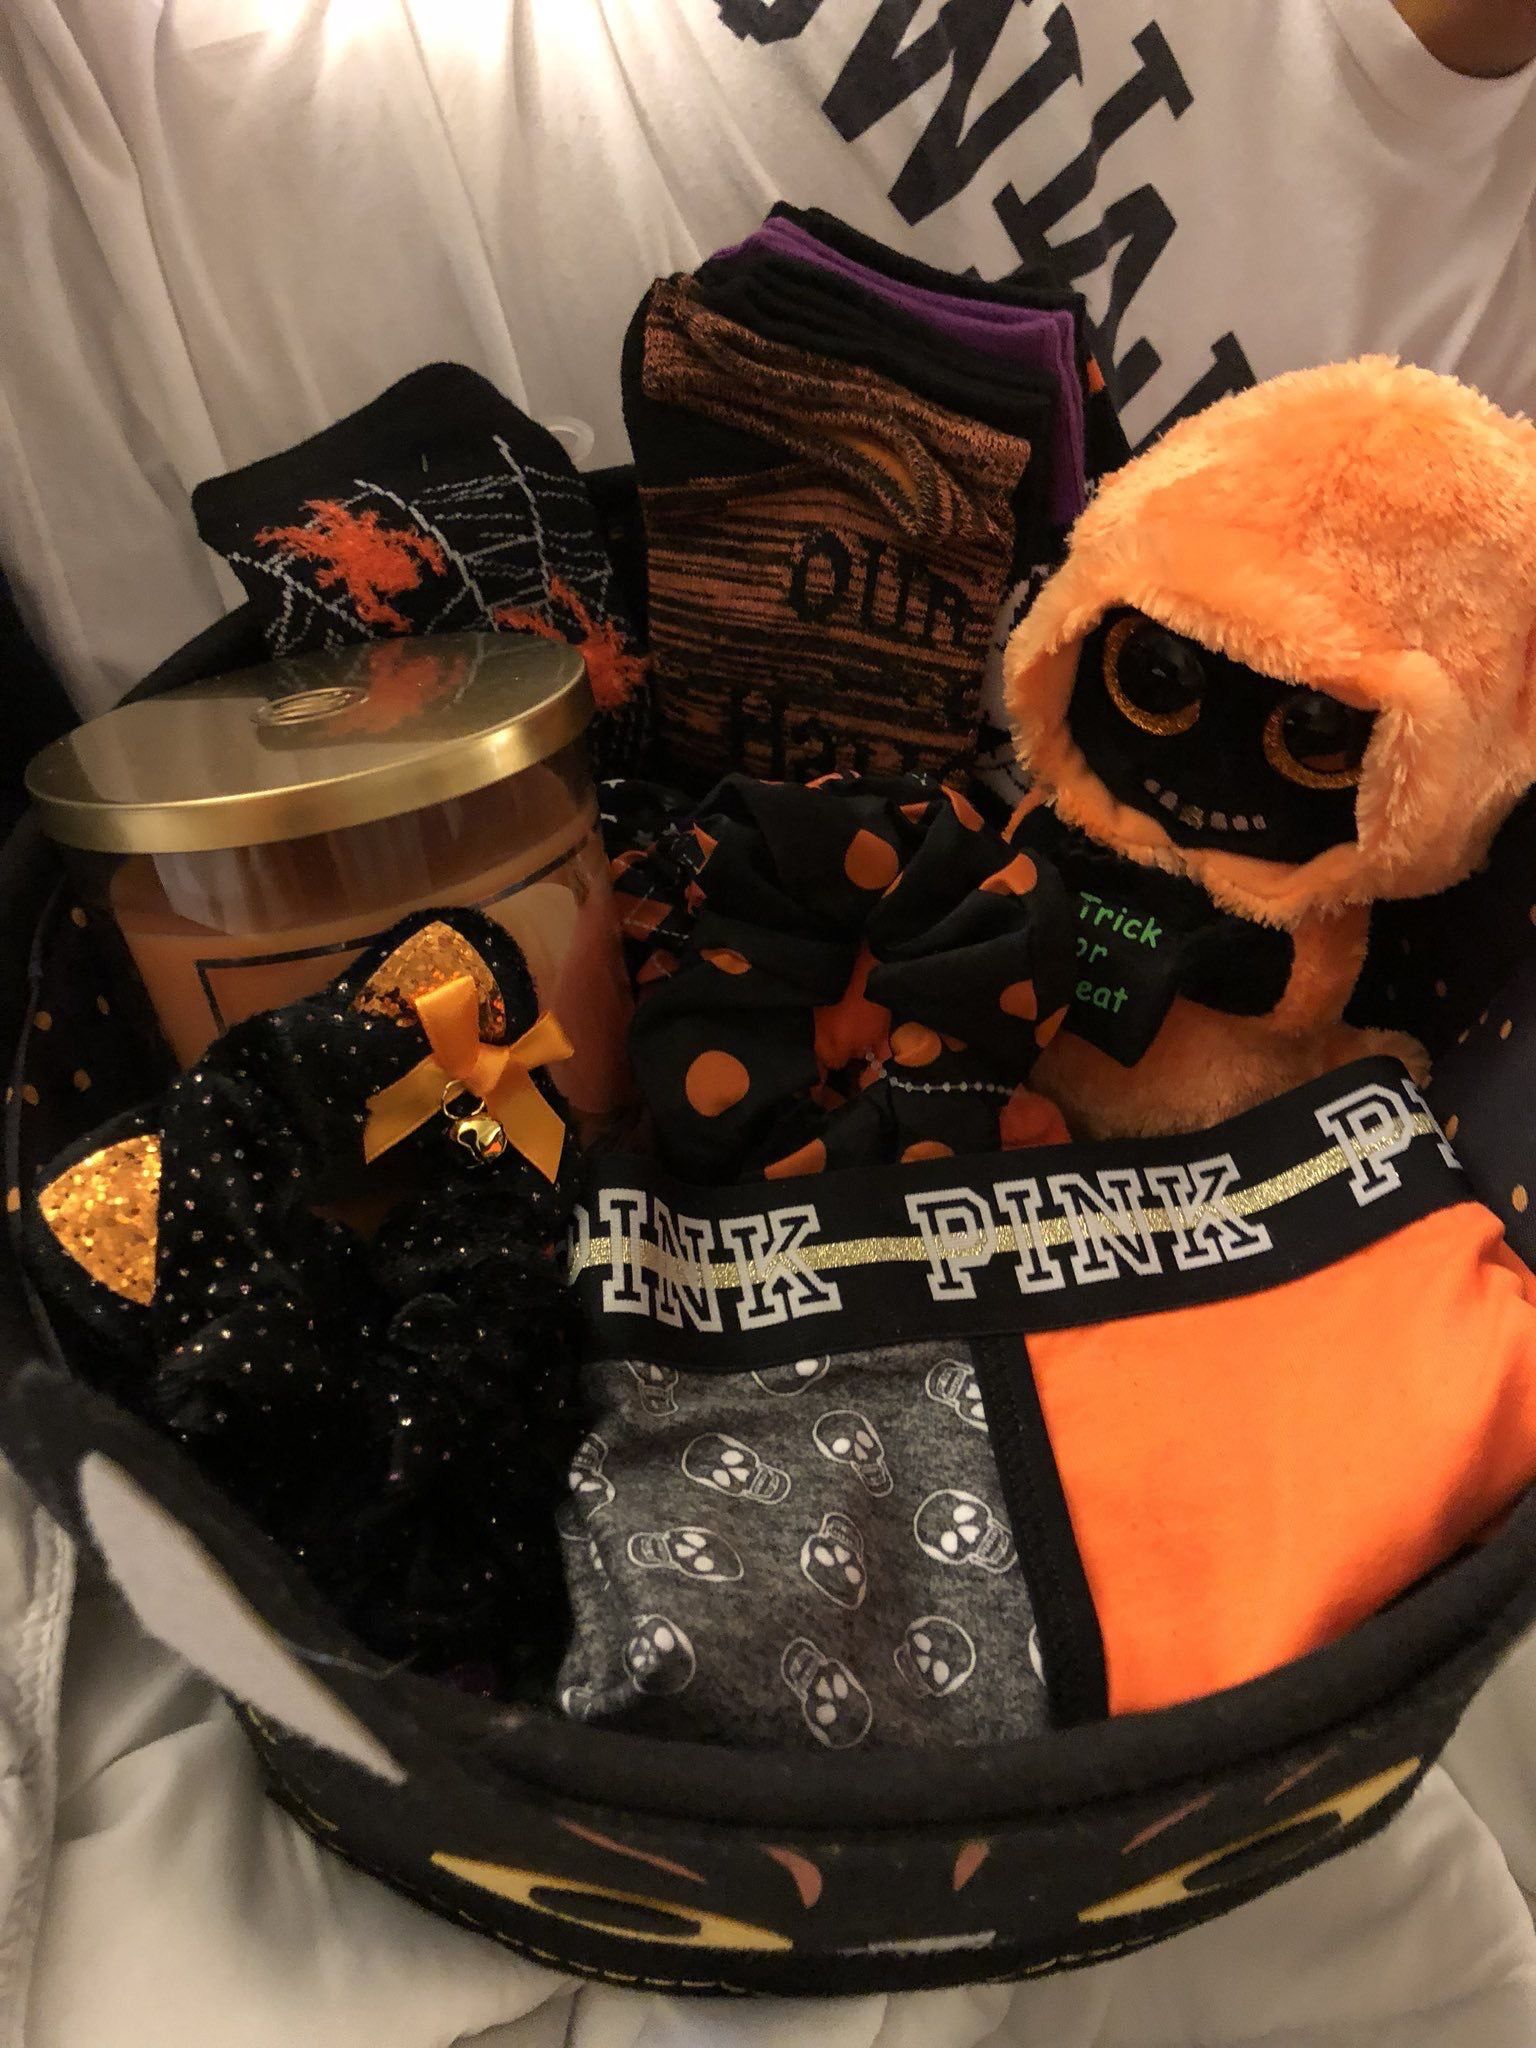 Pin by natalie holguin on Halloween boo baskets/gifts in